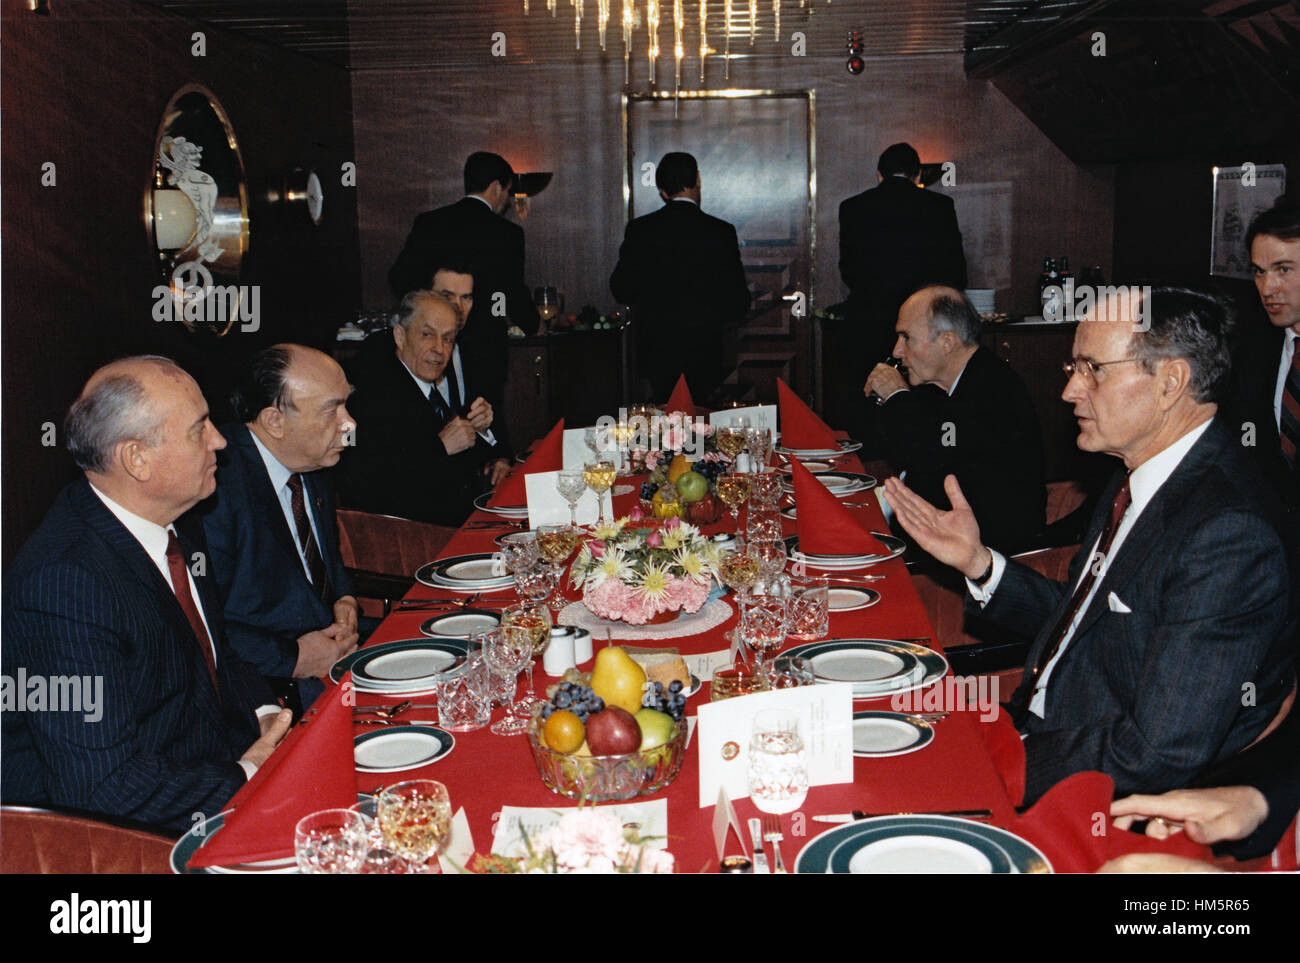 United States President George H.W. Bush, right, and General Secretary of the Communist Party of the Soviet Union - Stock Image